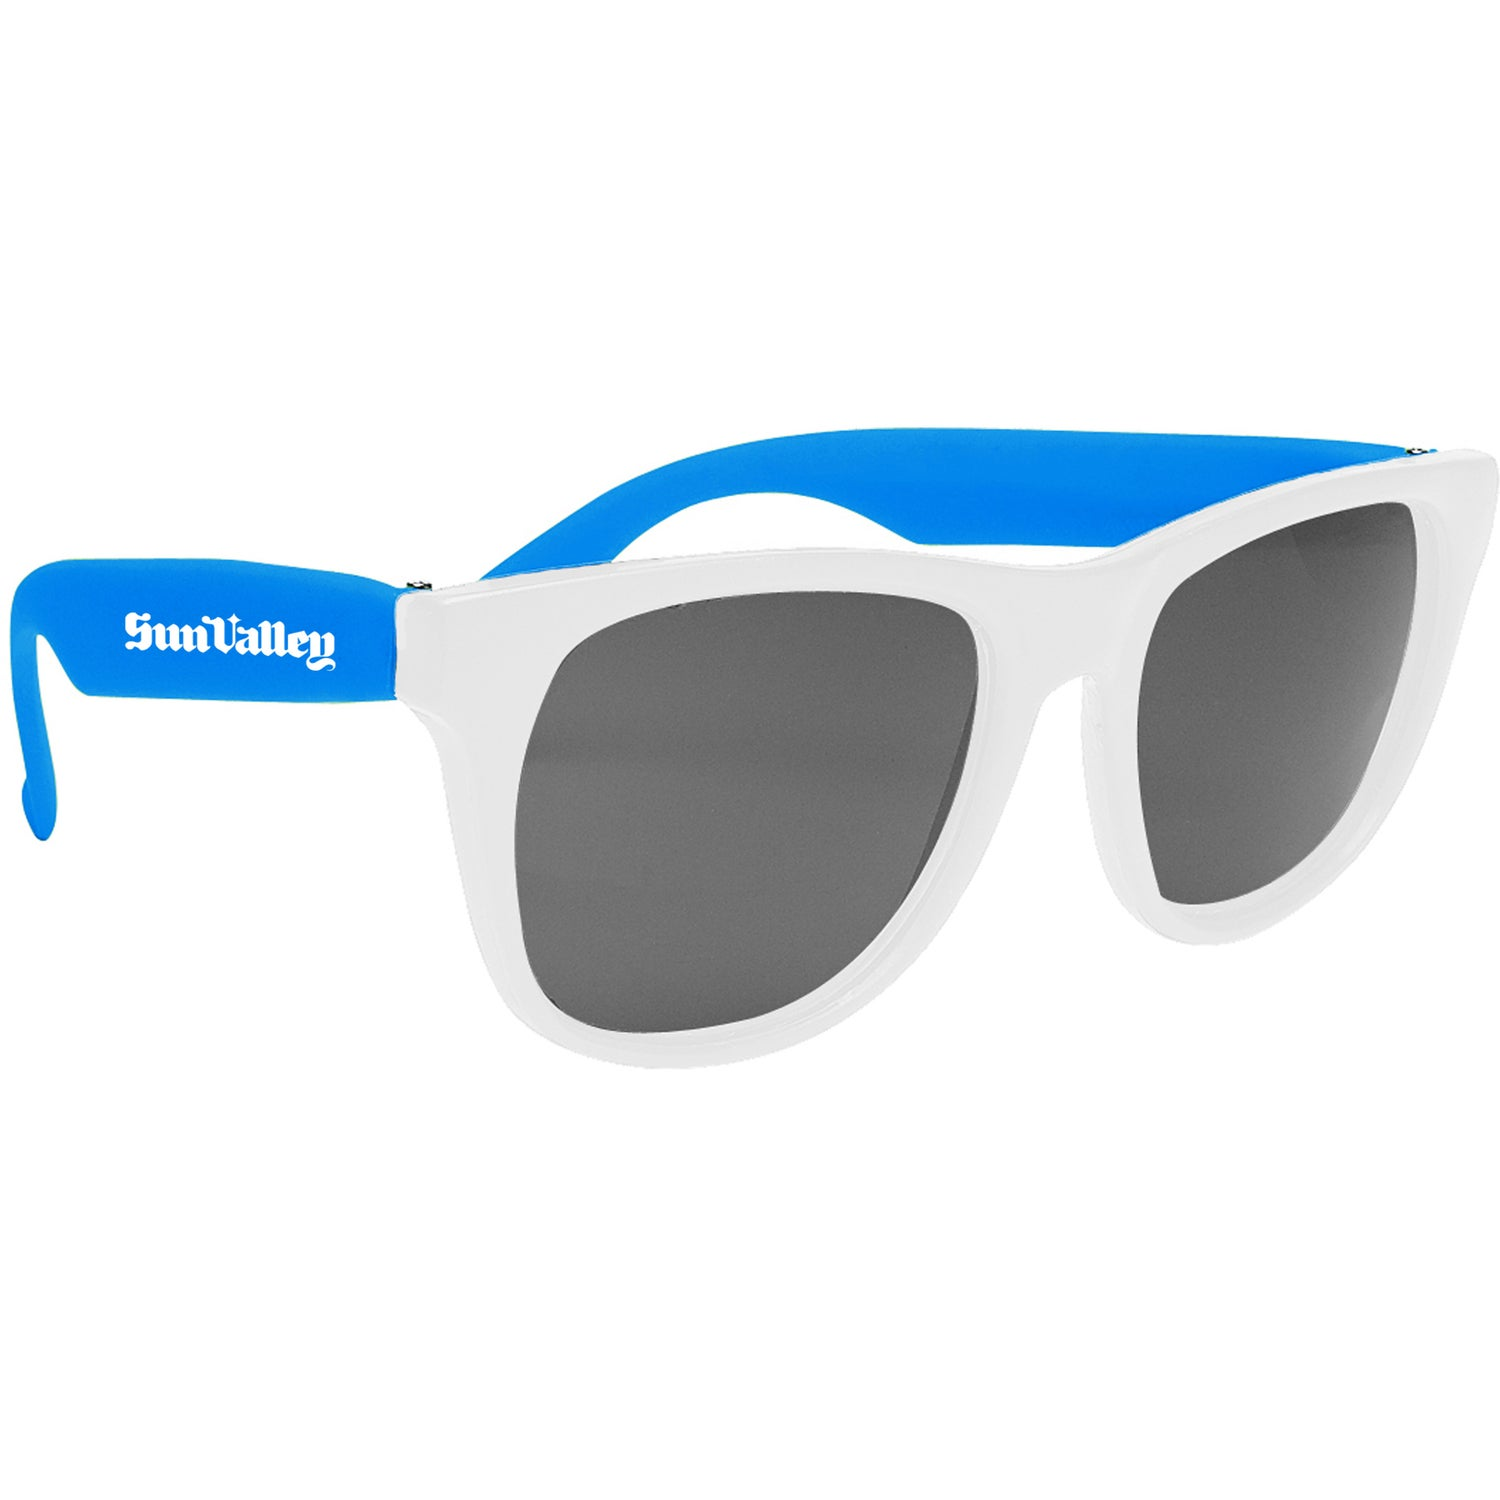 Promotional White-Framed Sunglasses with Custom Logo for $0.628 Ea.